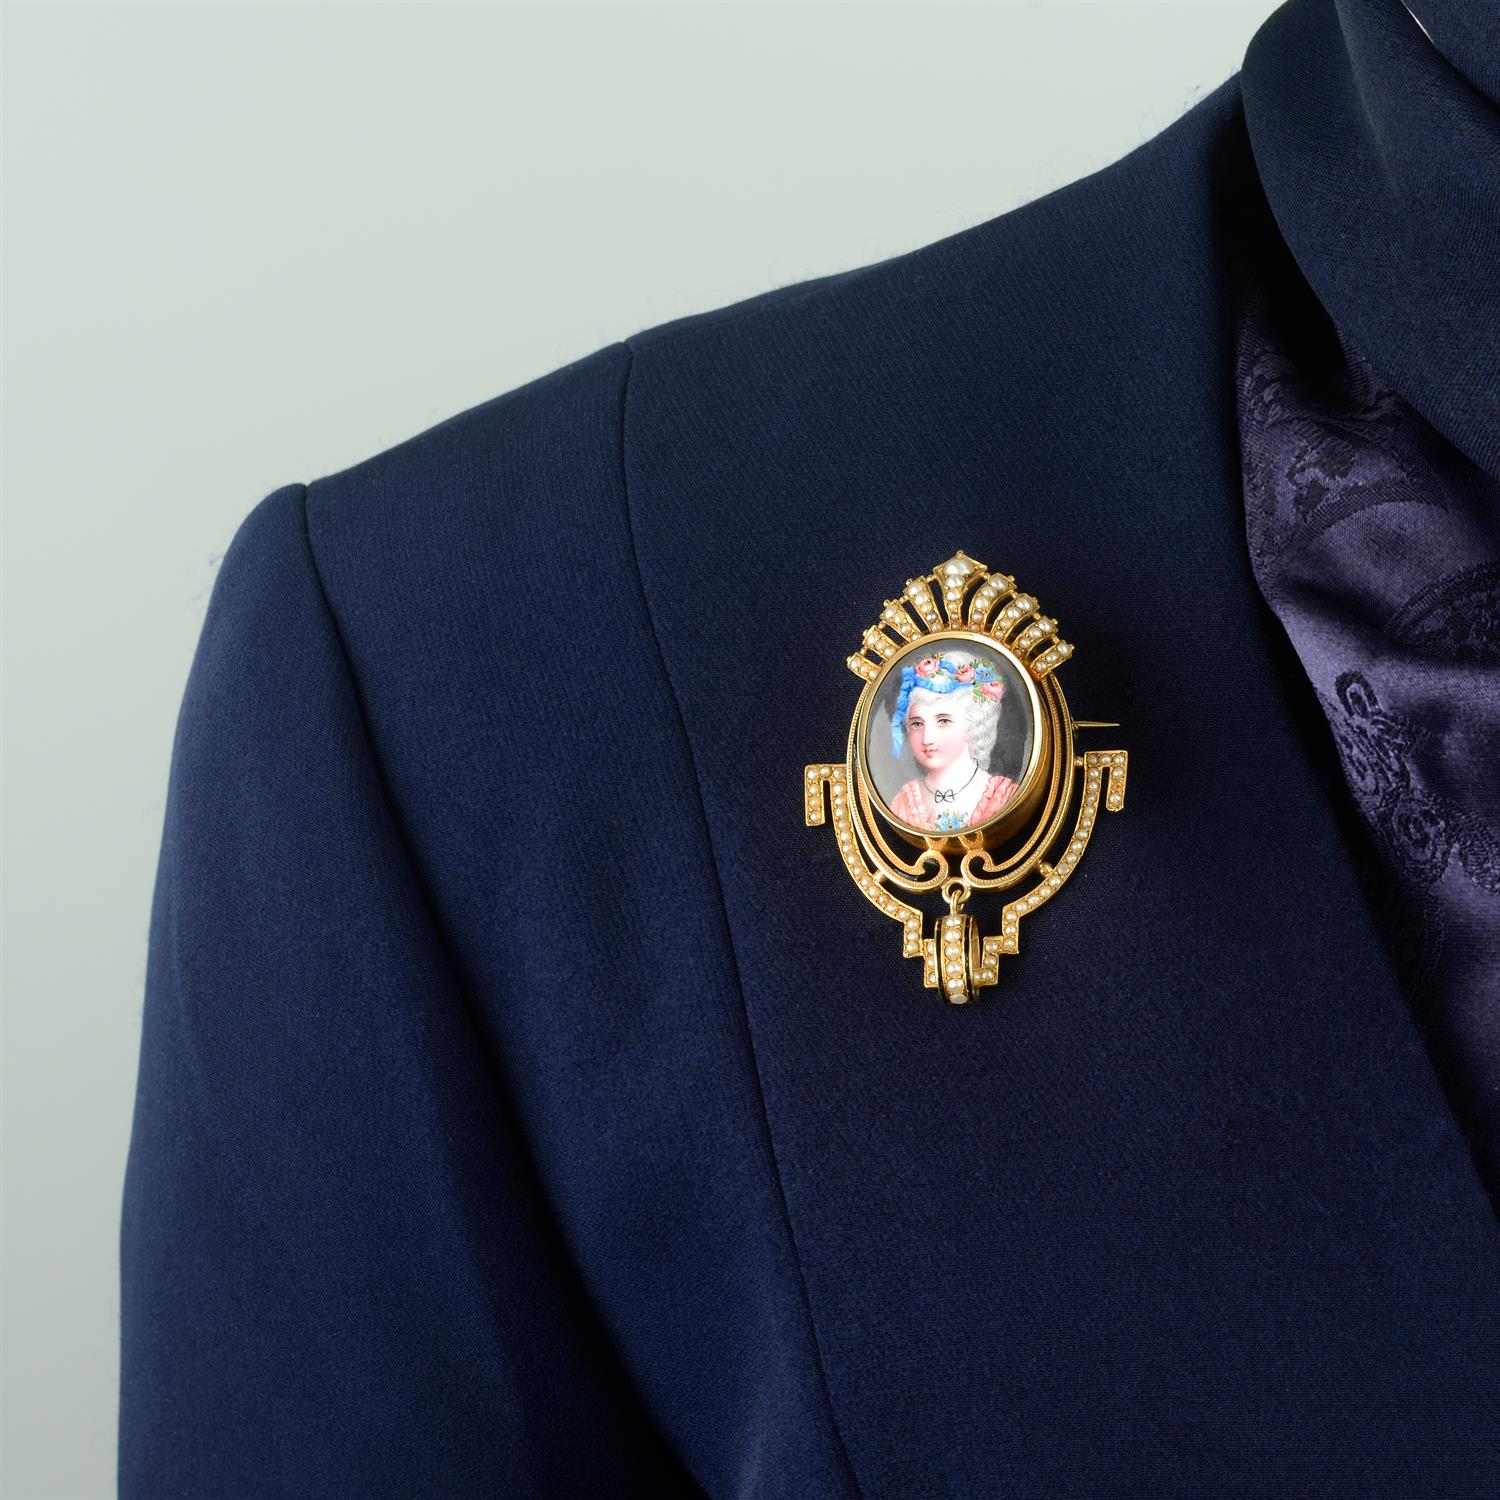 A late 19th century gold, enamel portrait and split pearl brooch, with matching earrings. - Image 6 of 6